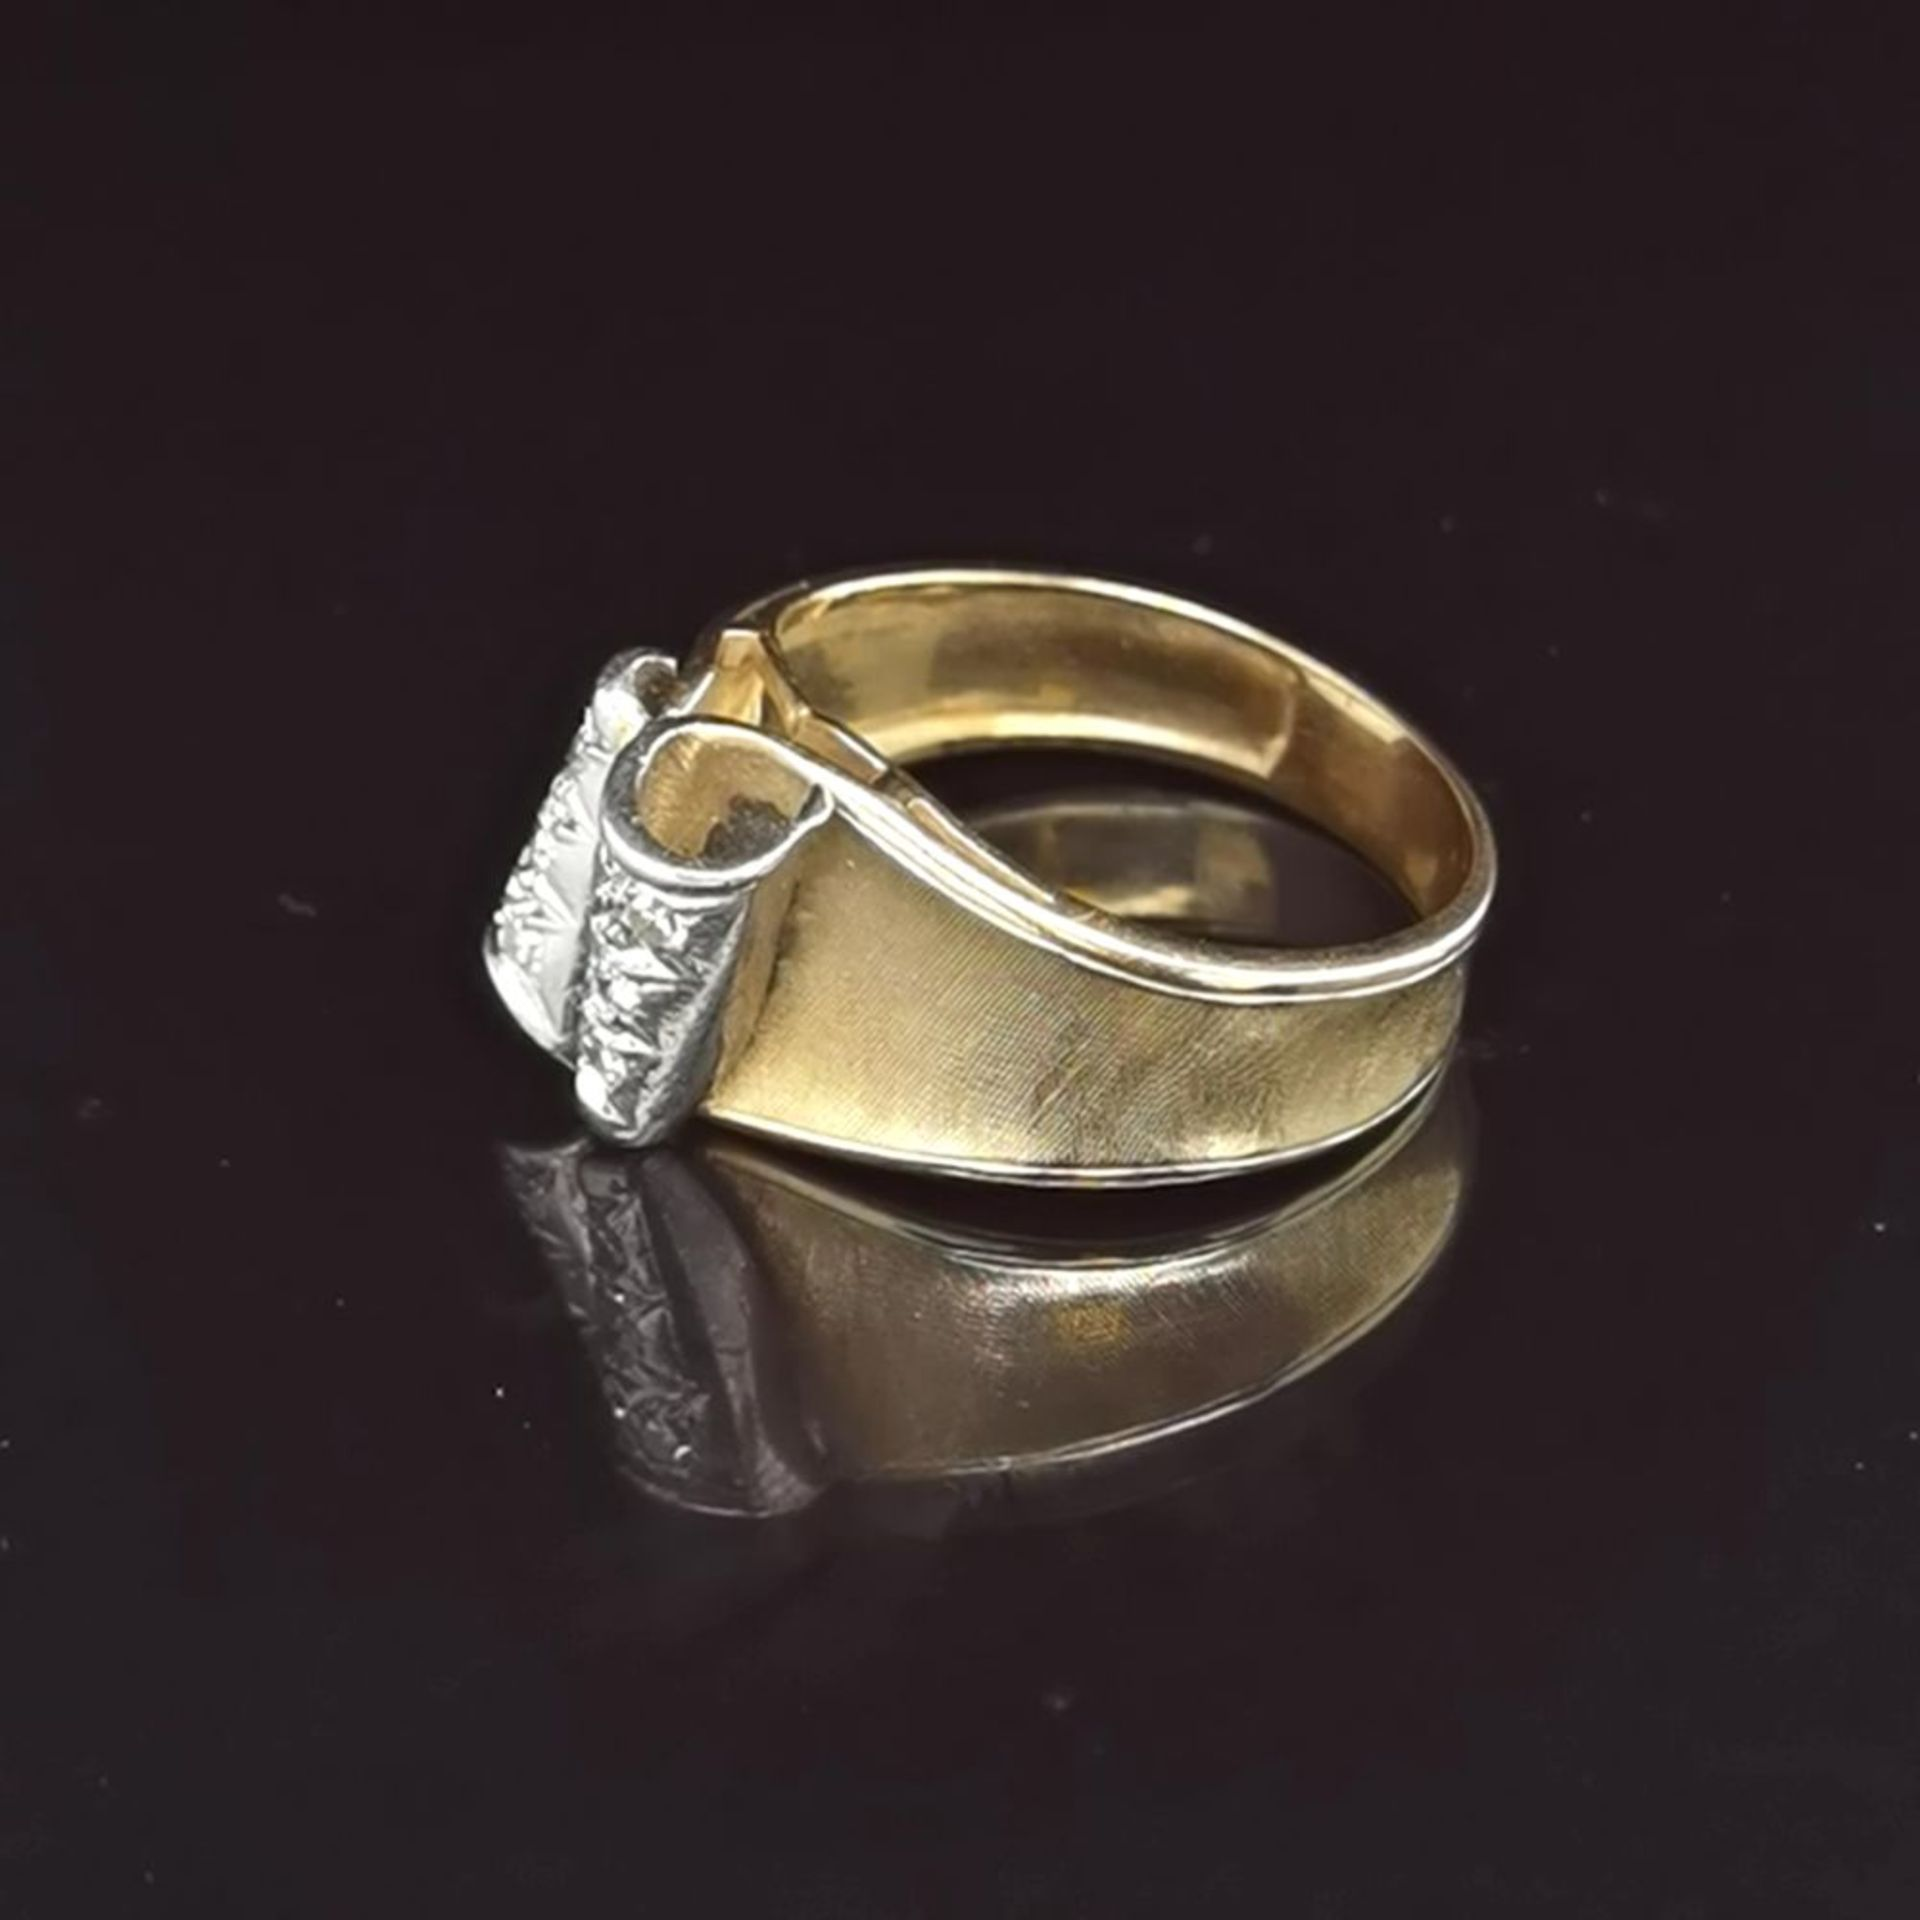 Diamant-Ring, 585 Gold 5,4 - Image 2 of 3